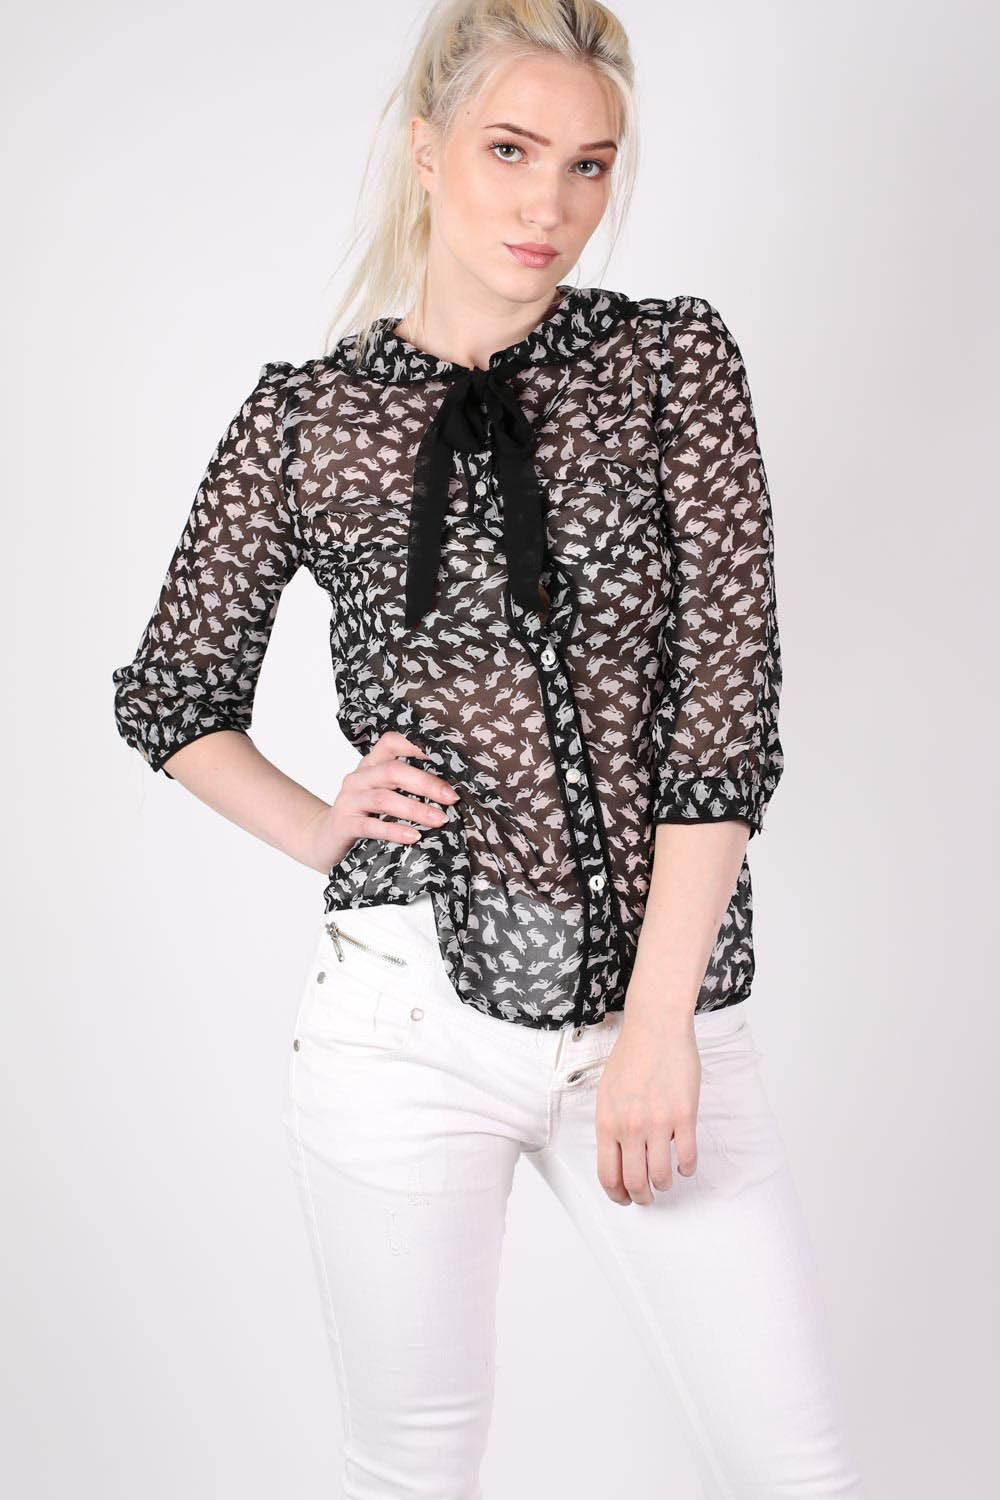 Rabbit Print Tie Bow Neck Chiffon Blouse in Black MODEL FRONT